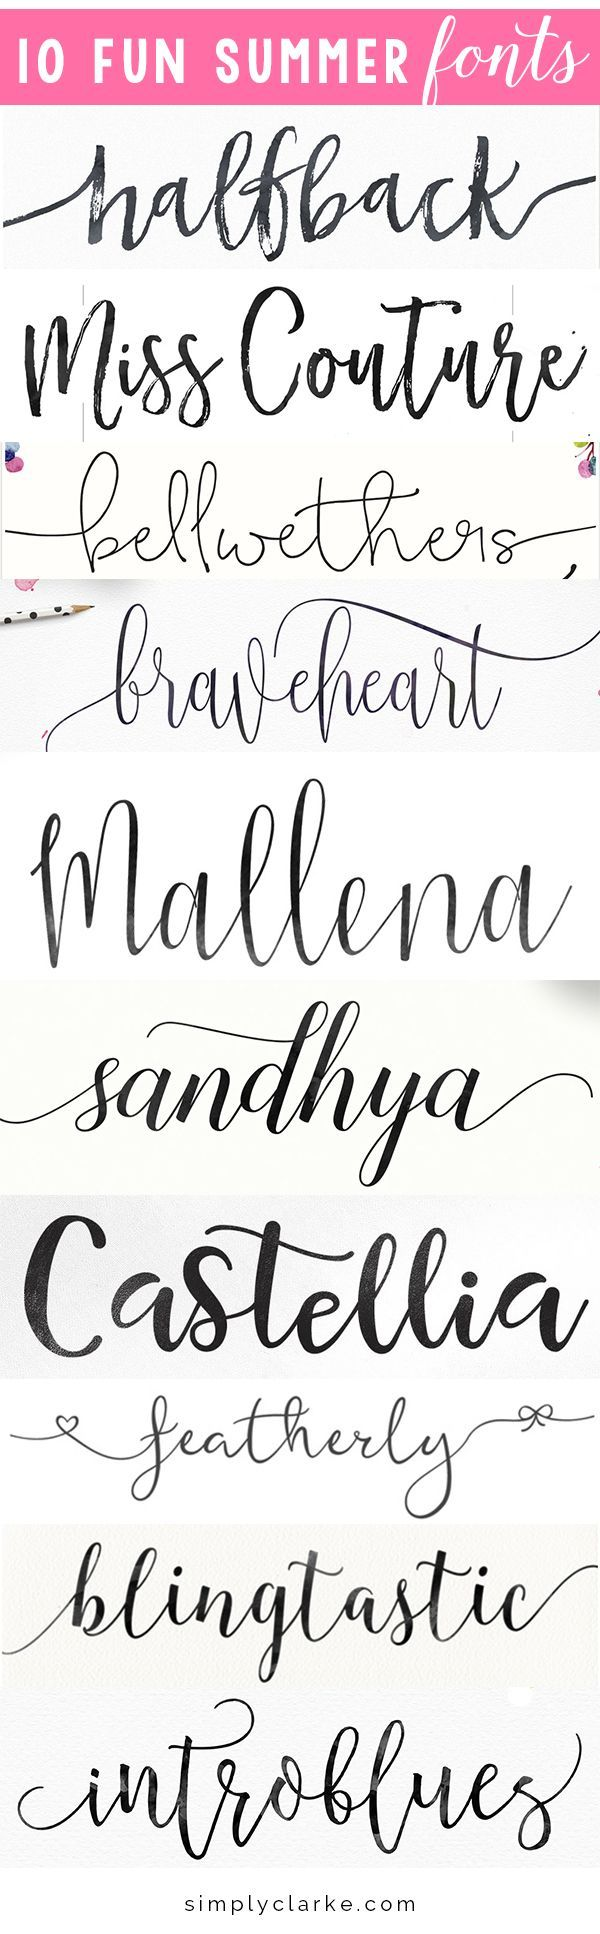 23 Creative Lettering ideas  lettering, creative lettering, hand